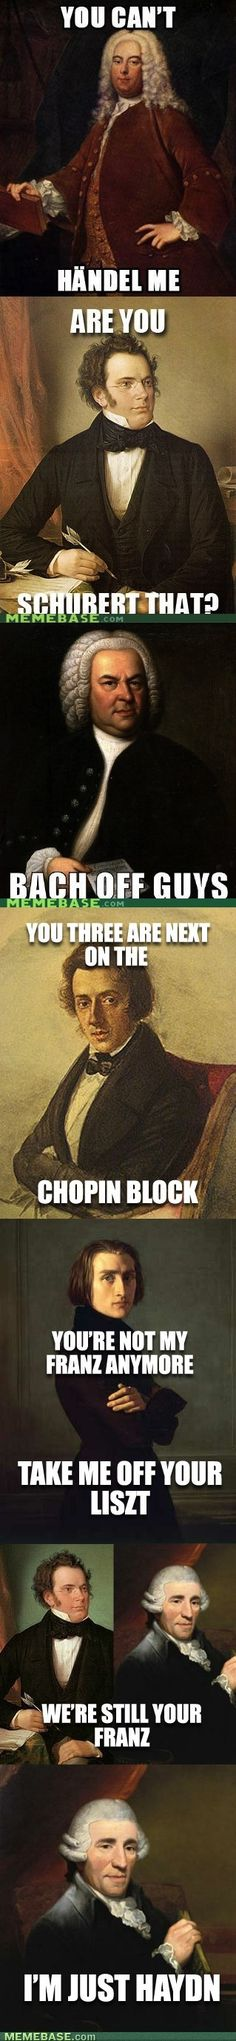 A little classical humor...